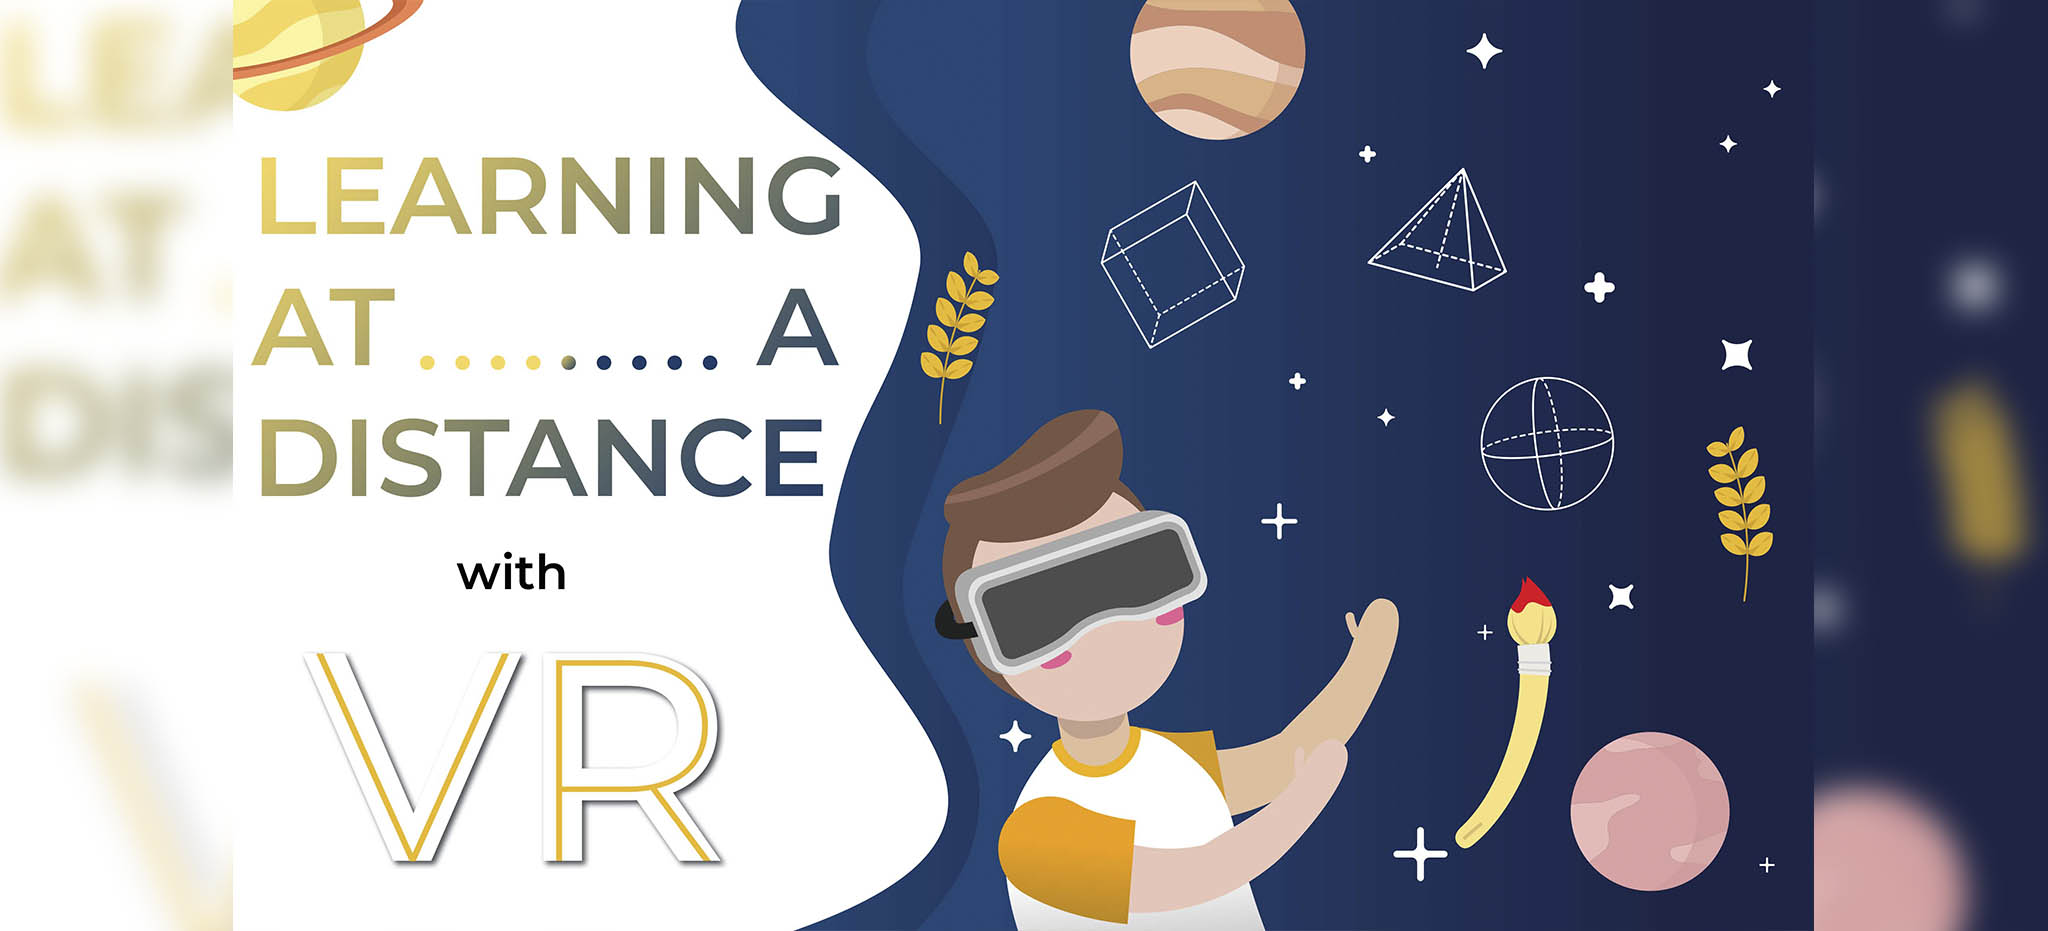 Learning at a Distance, VR Education Coronavirus